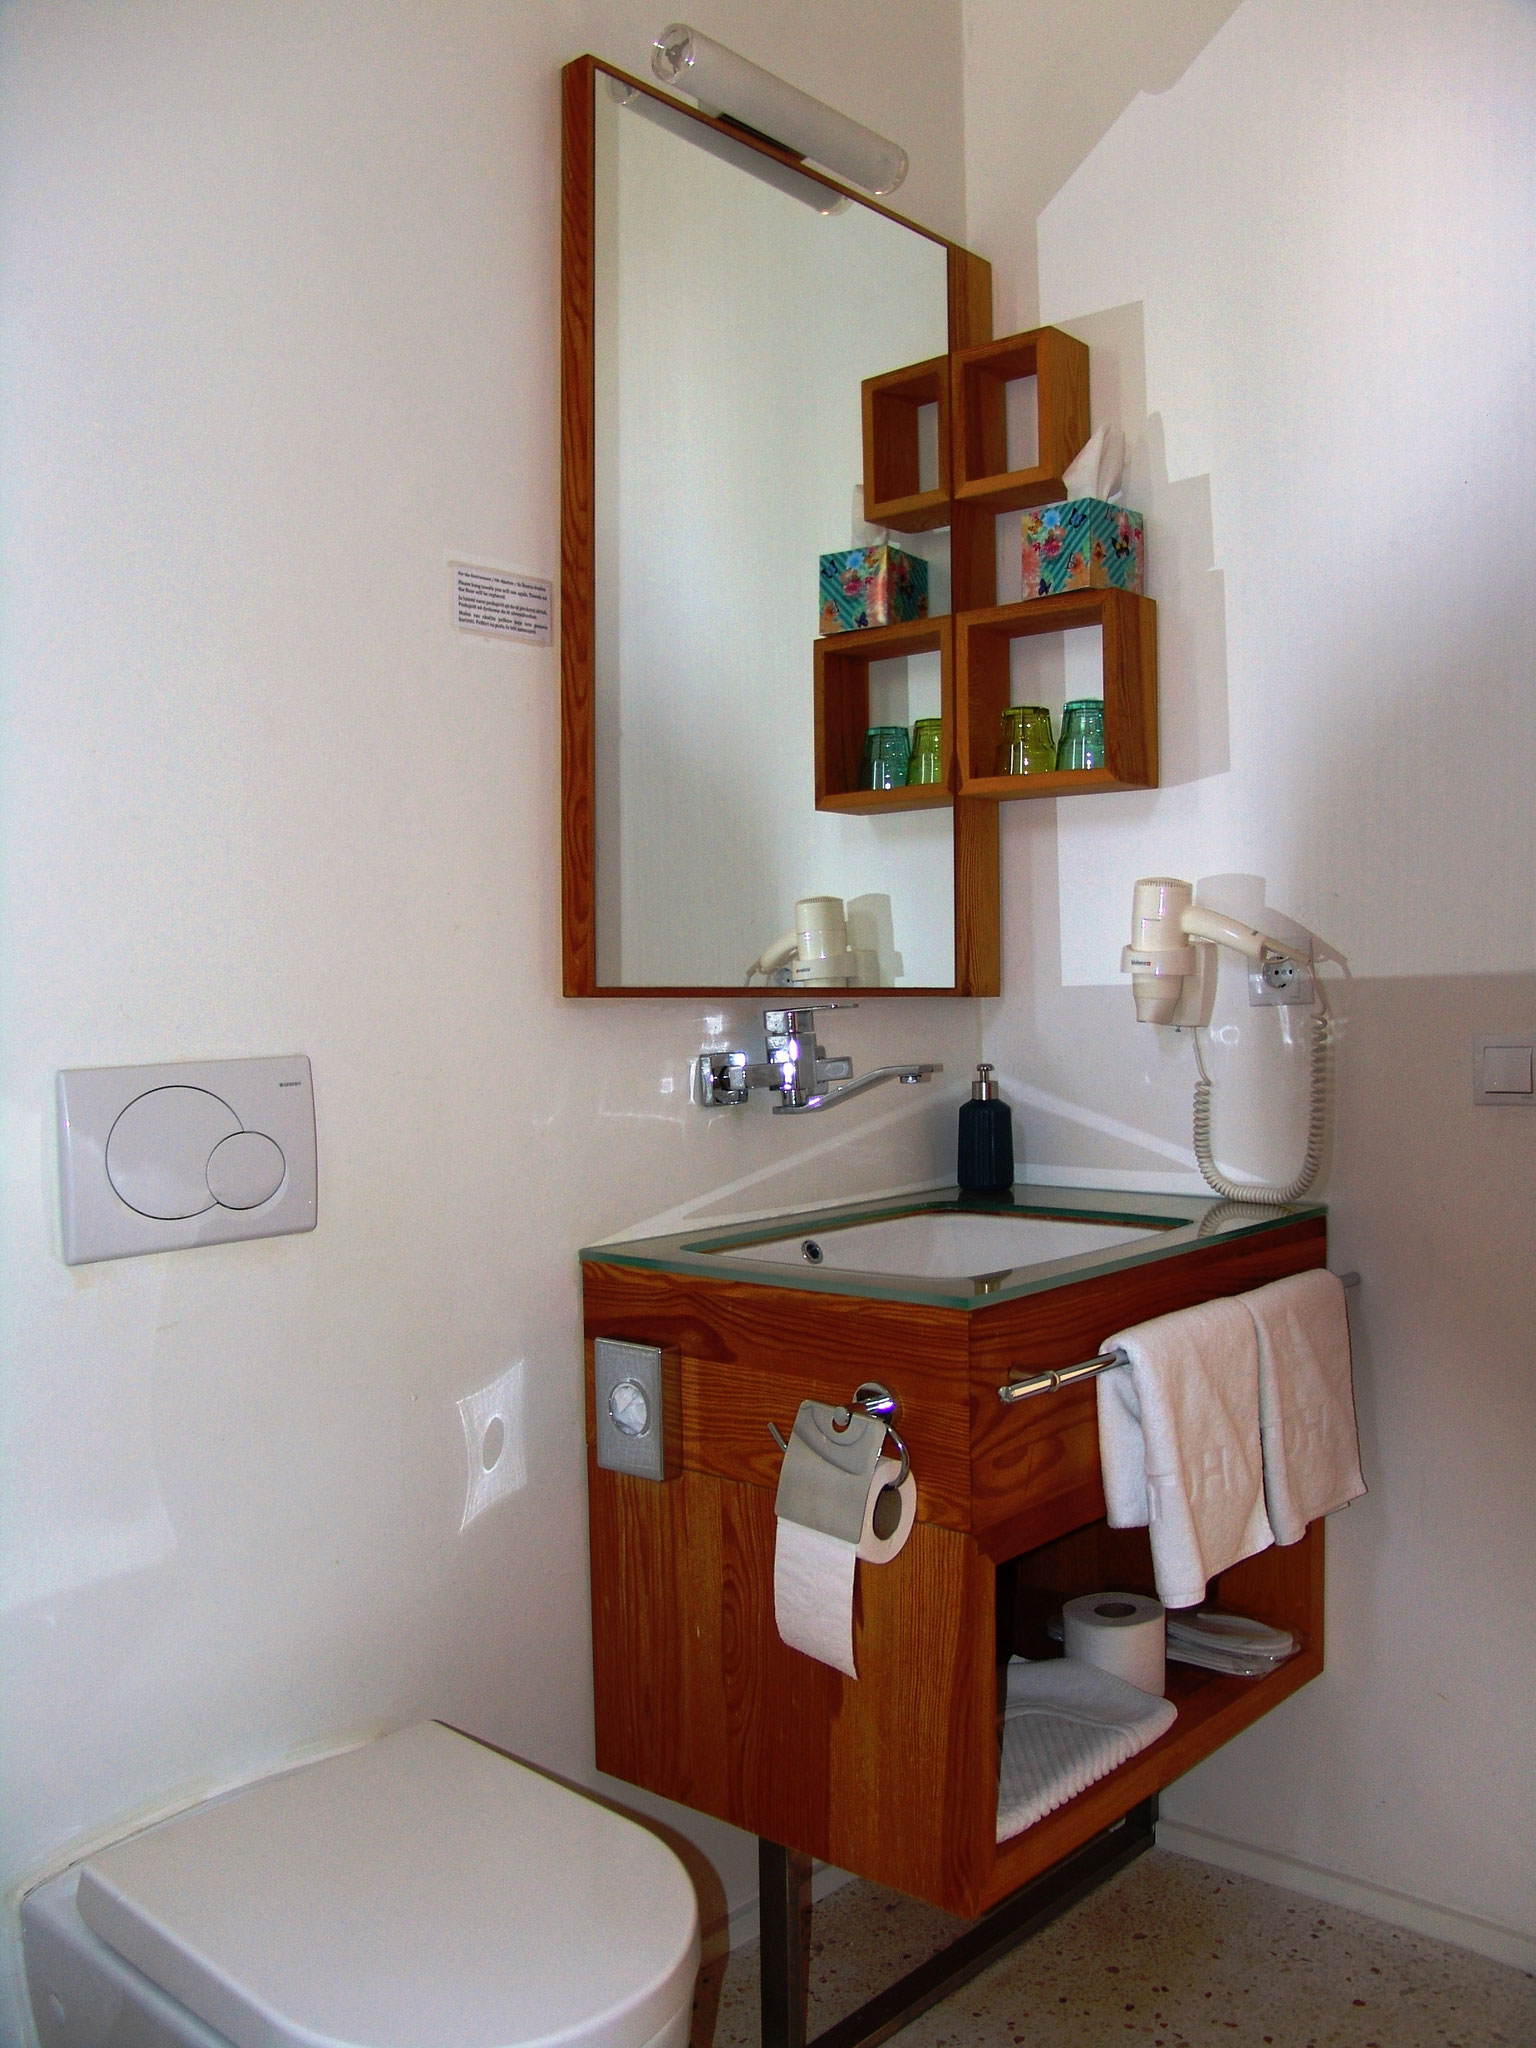 Bathroom of the family room